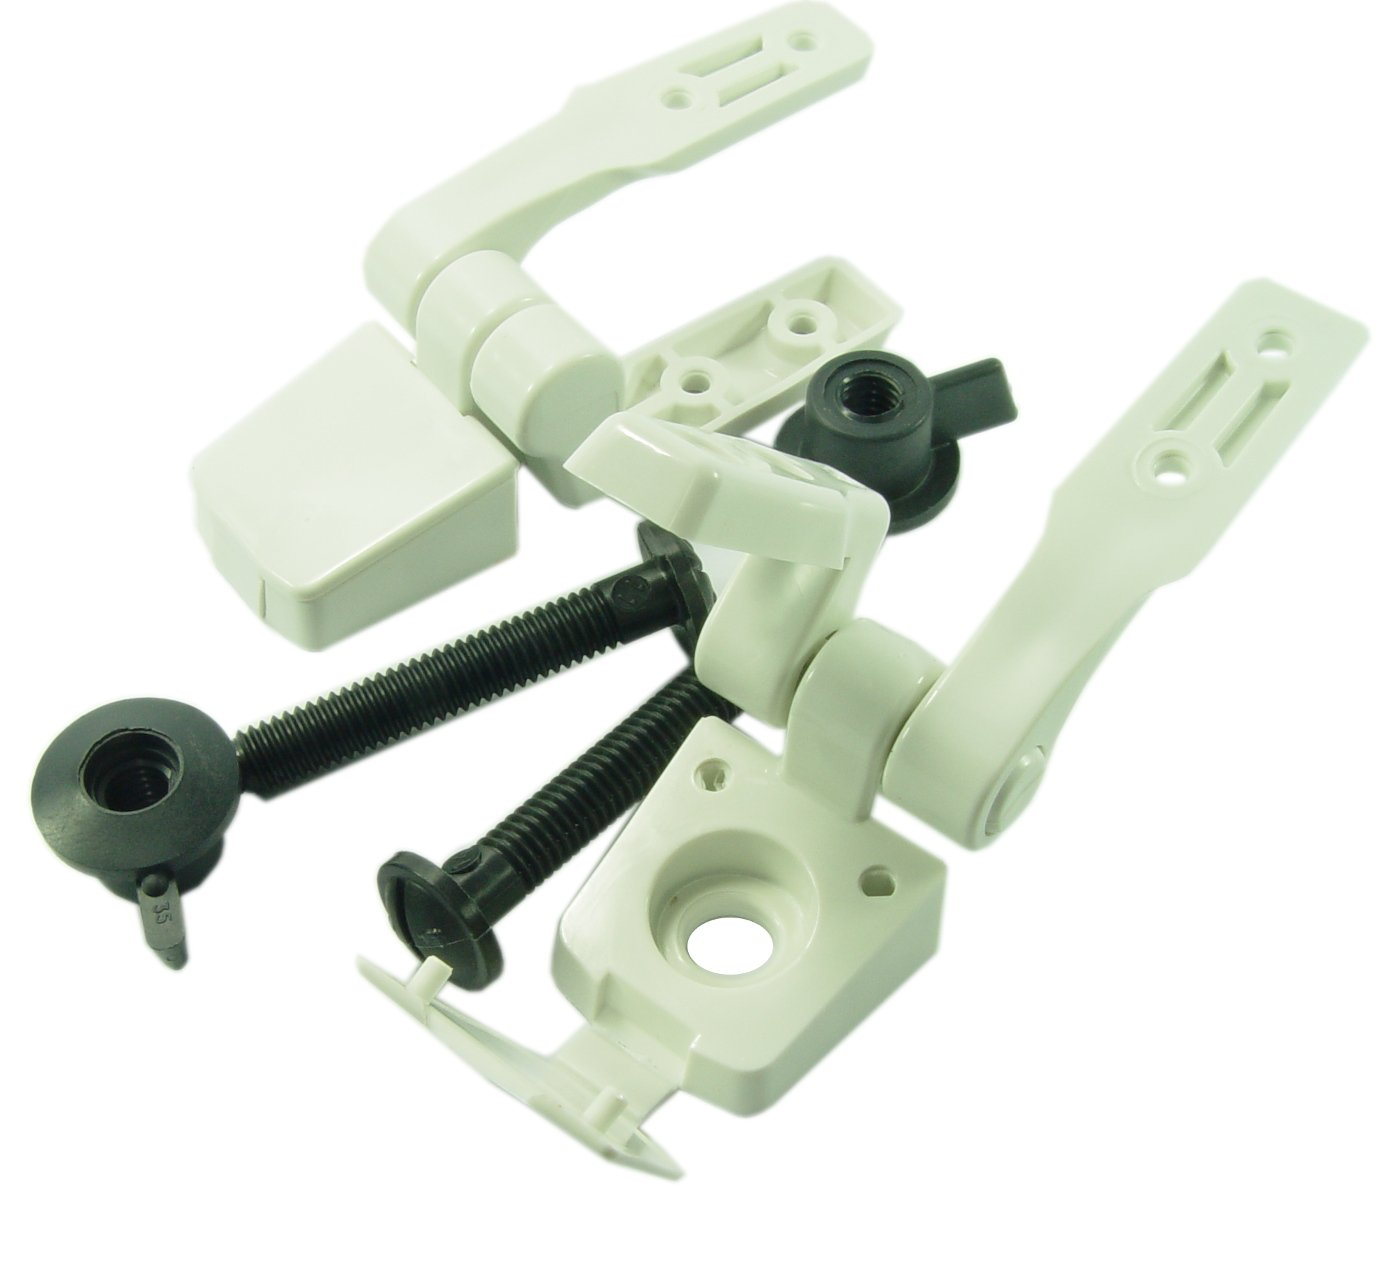 bemis toilet seat parts. Amazon com  Jabsco Toilet Seat Hinge Set for Compact Wood Assembly 29098 1000 by Sailing Equipment Sports Outdoors